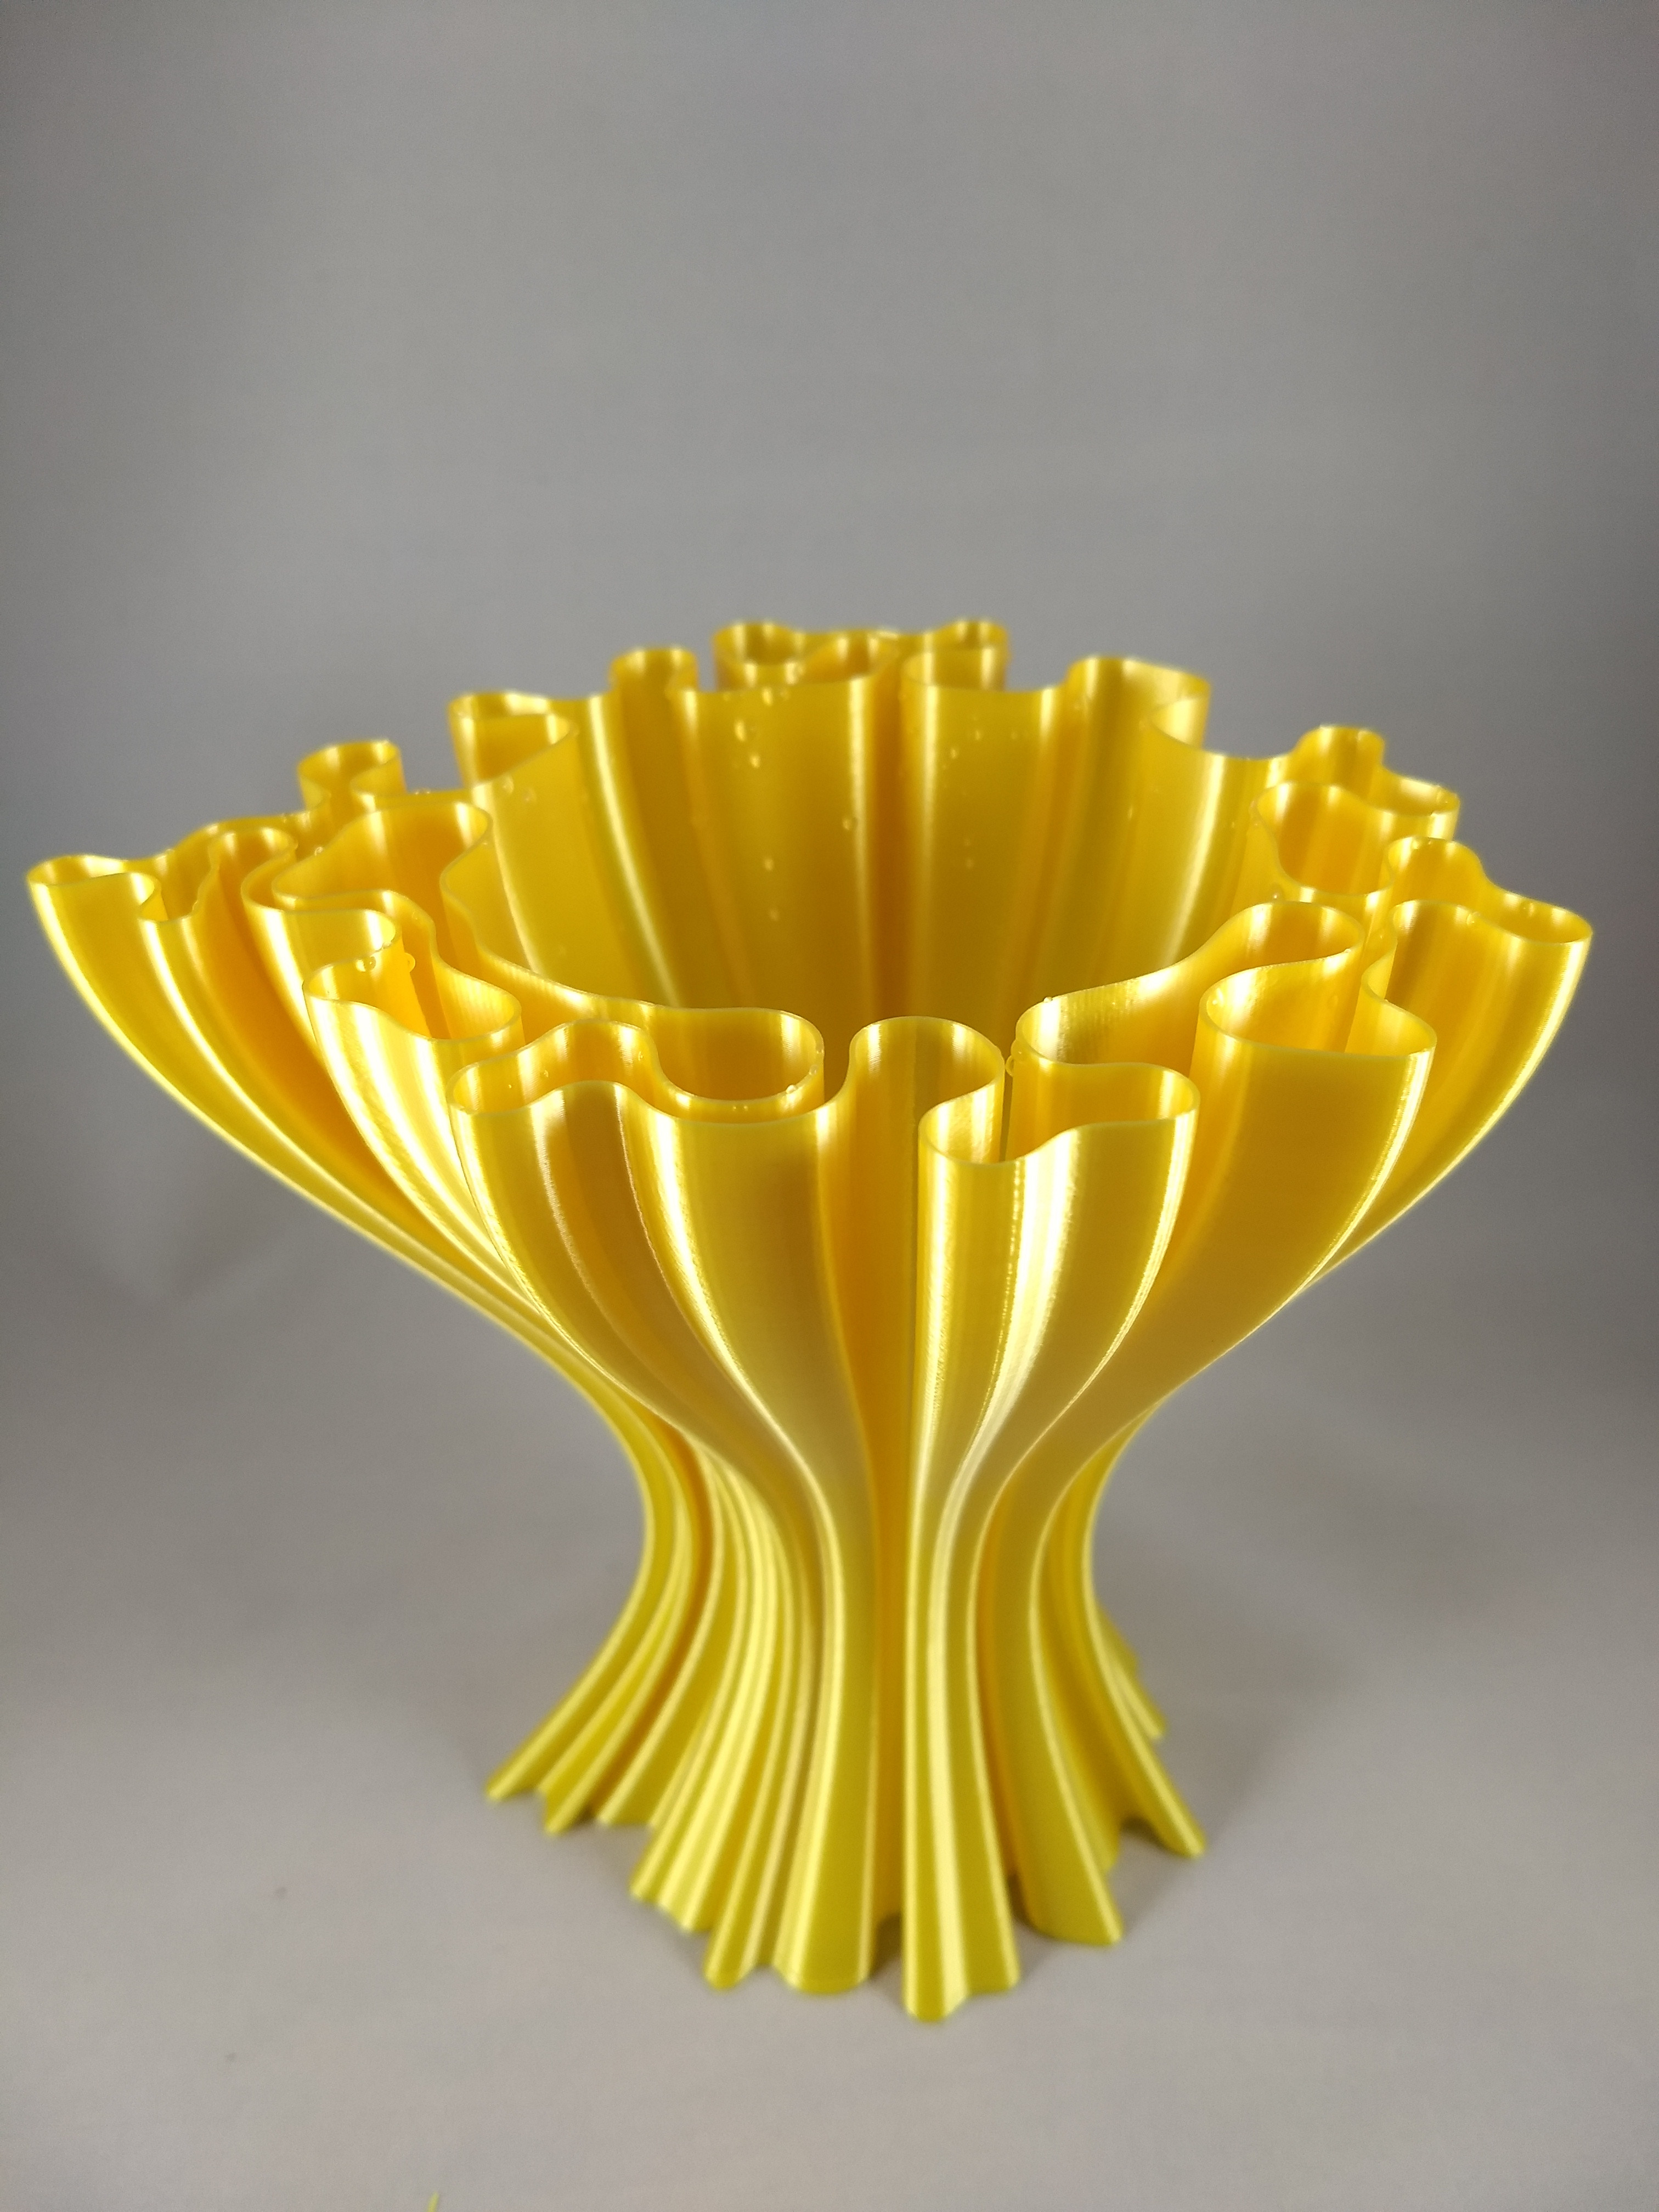 3d printed vase for sale of 3d printable wavy vase by fernando jerez in picture of print of wavy vase this print has been uploaded by eric joe